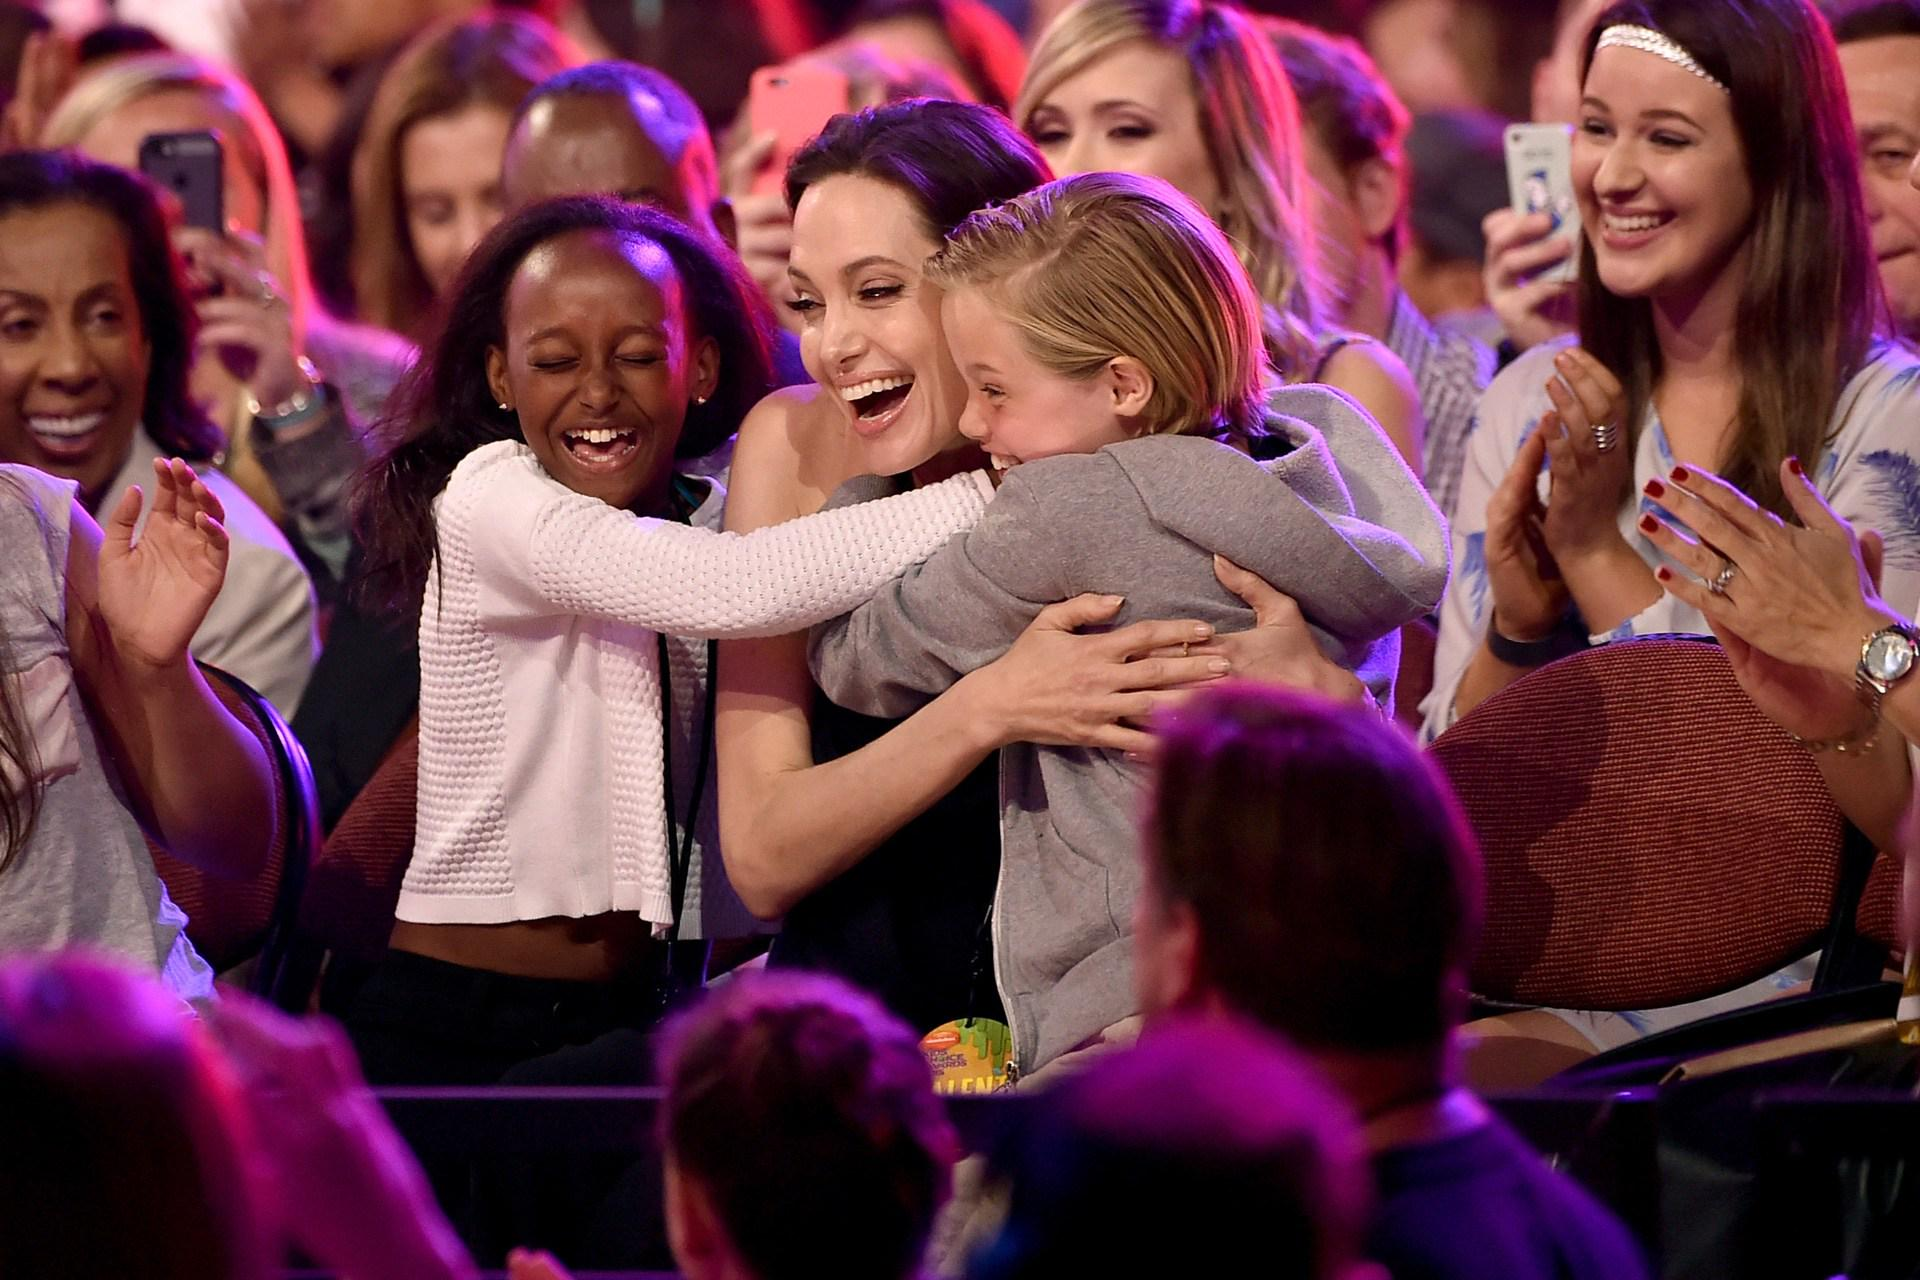 Angelina Jolie returns to the public eye, for a very happy occasion: http://t.co/aSuzY6kw7c http://t.co/NXDa3wN2RS